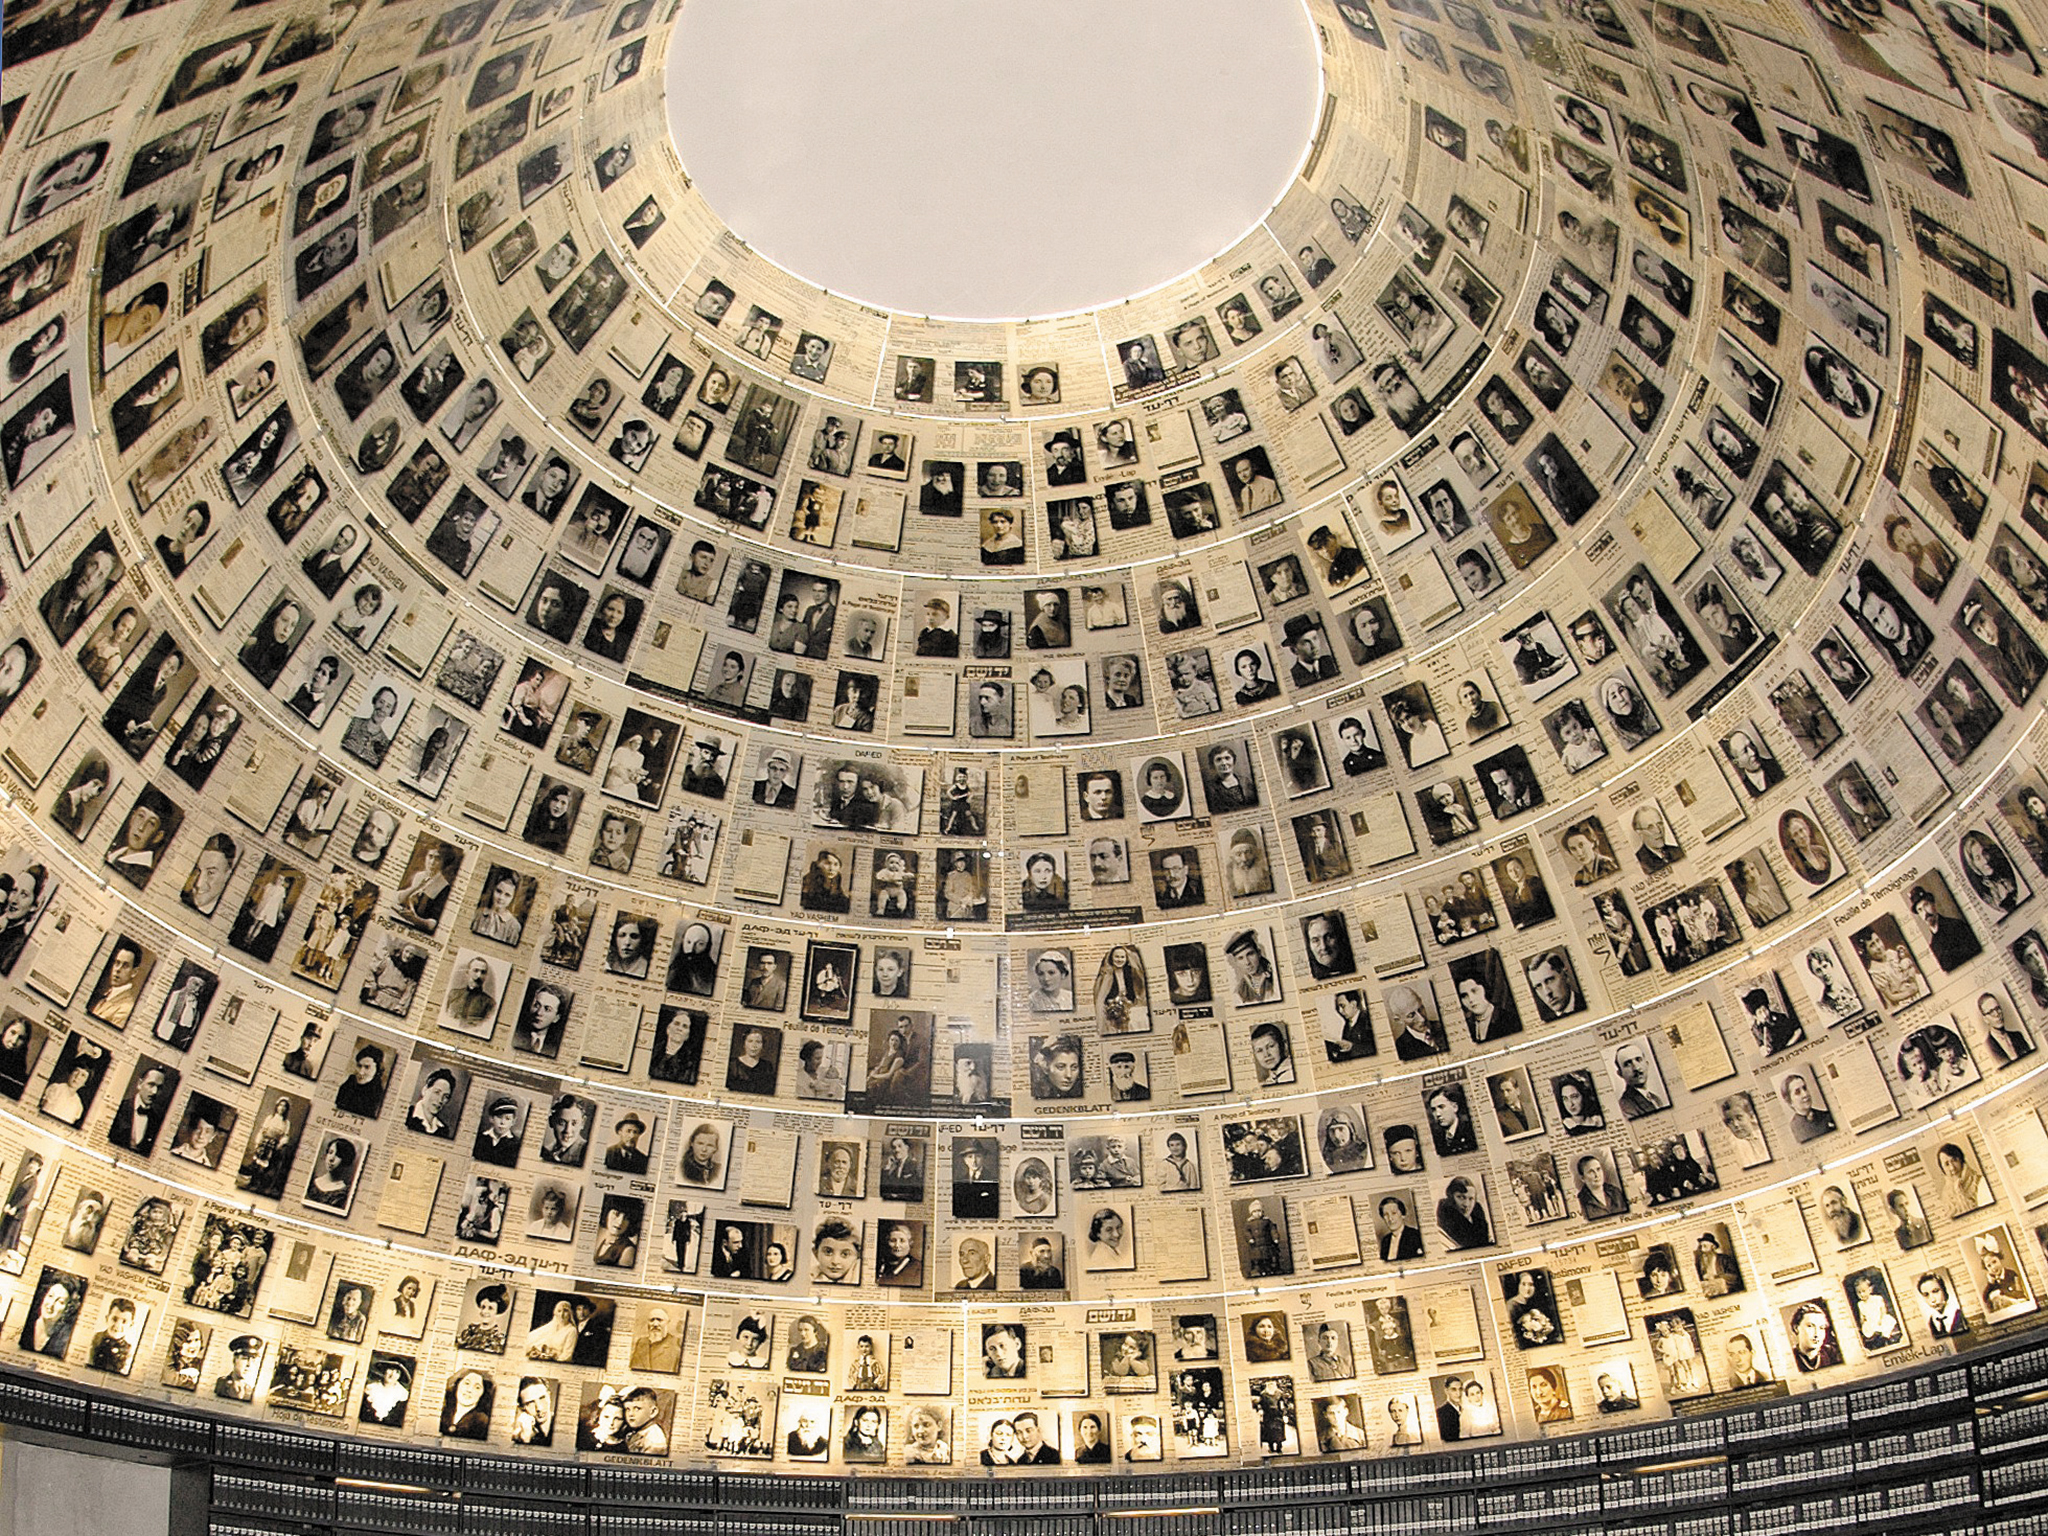 Yad Vashem - World Holocaust Remembrance Center